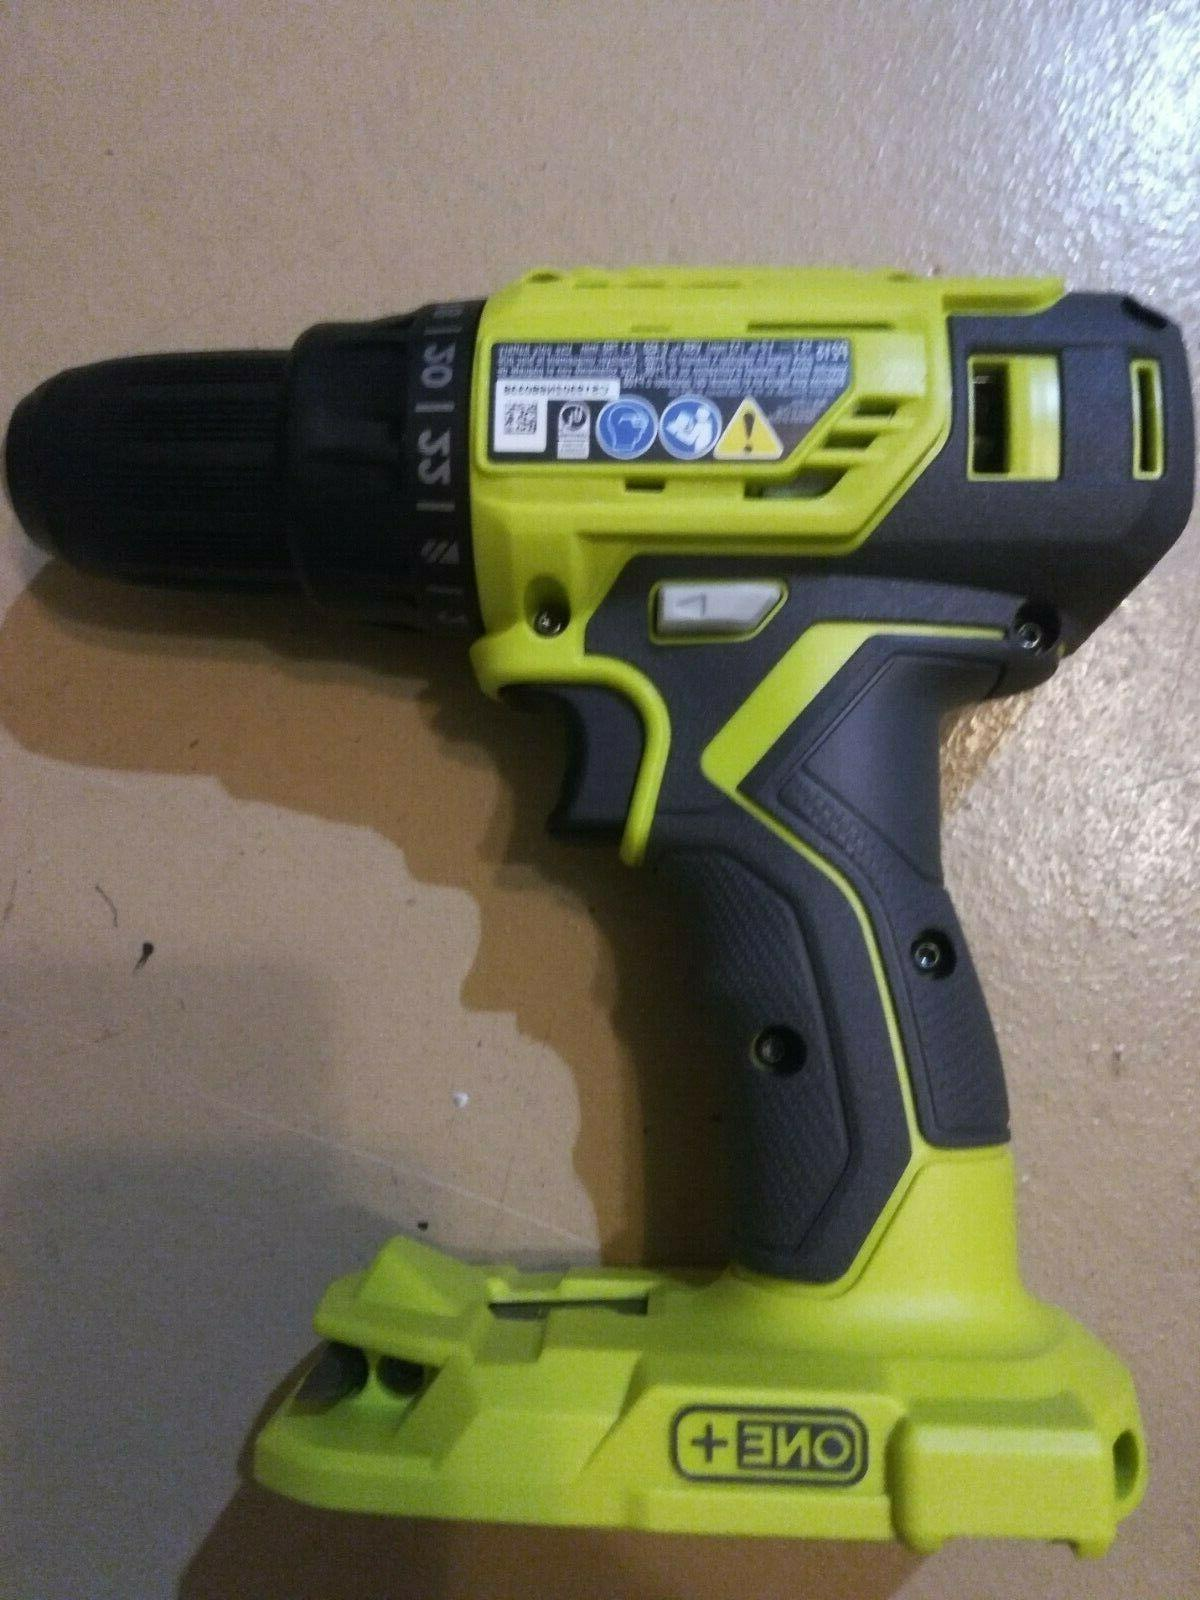 ONE+ Drill/Driver